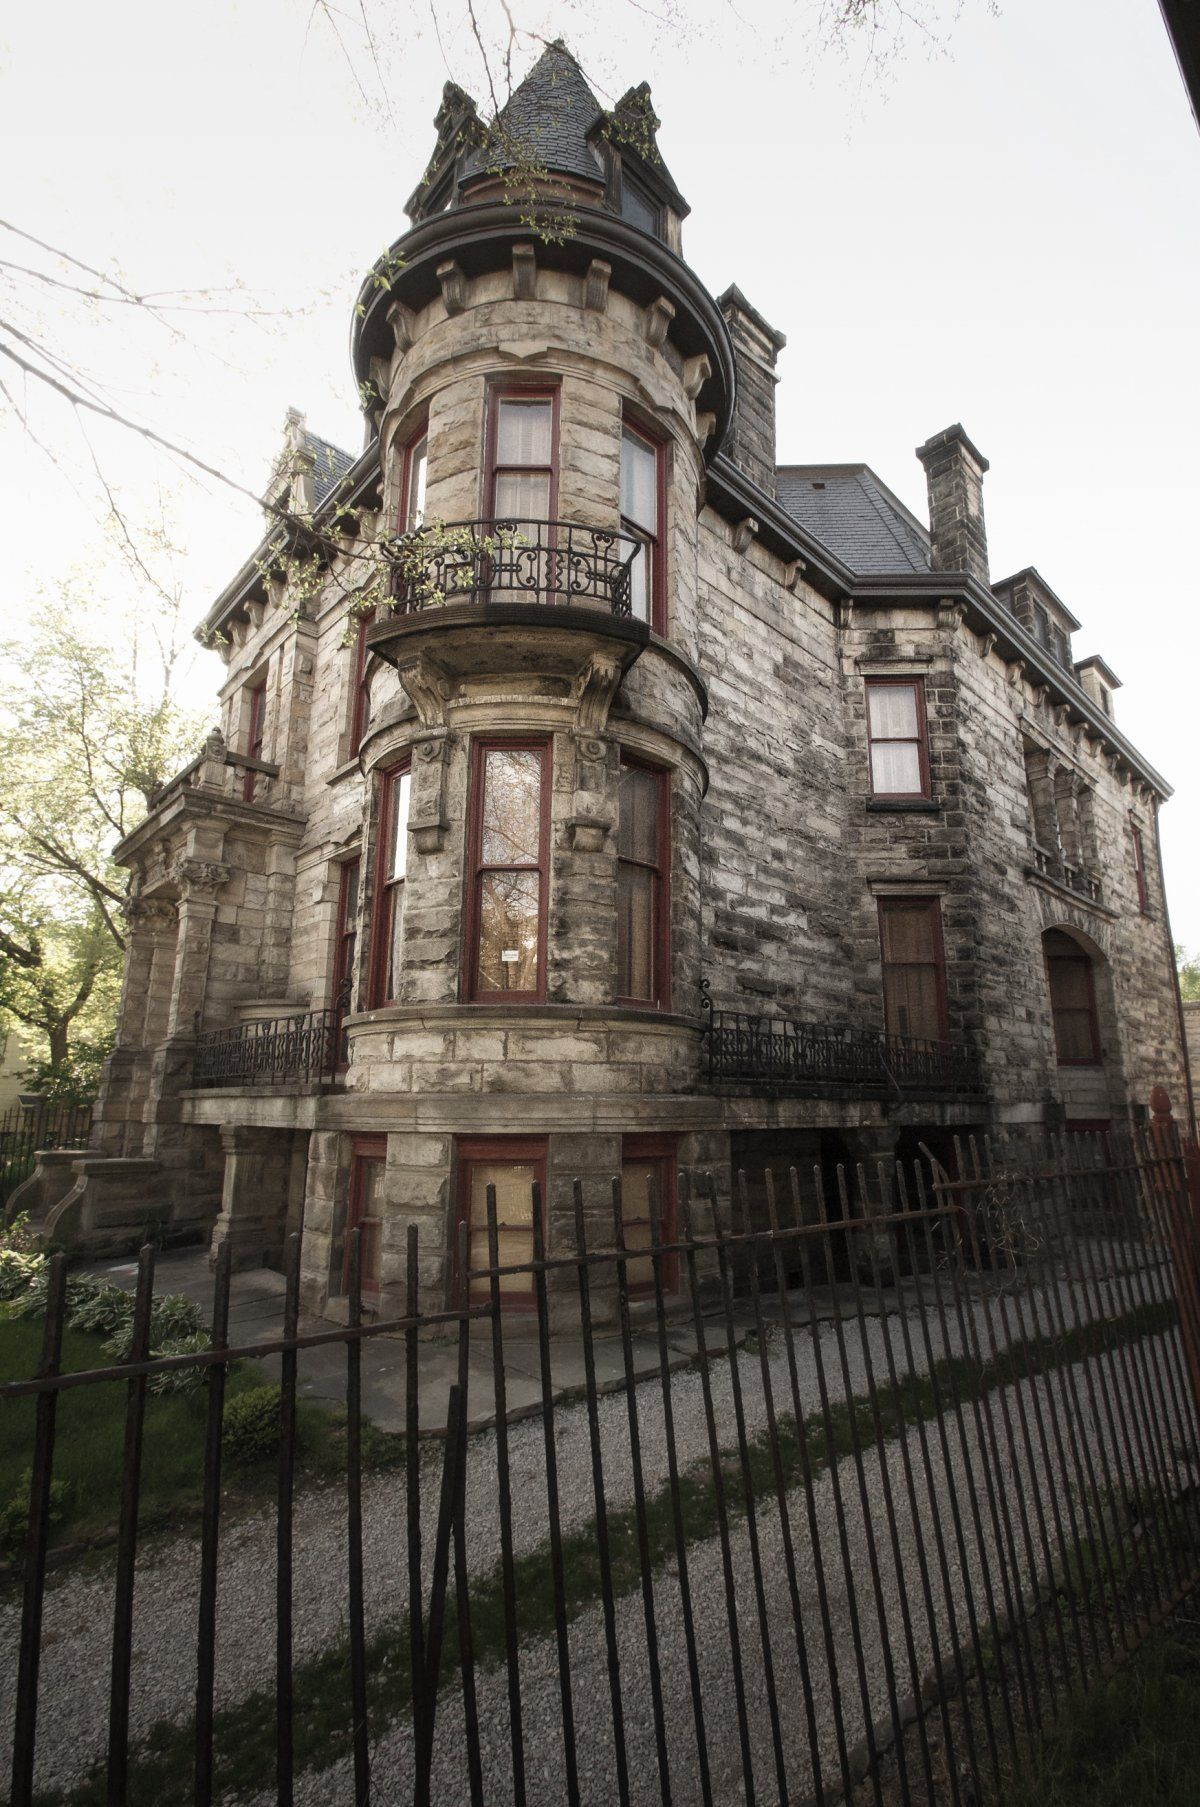 11 Of The Most Terrifying Real Haunted Houses In America Real Haunted Houses Haunted Houses In America Houses In America